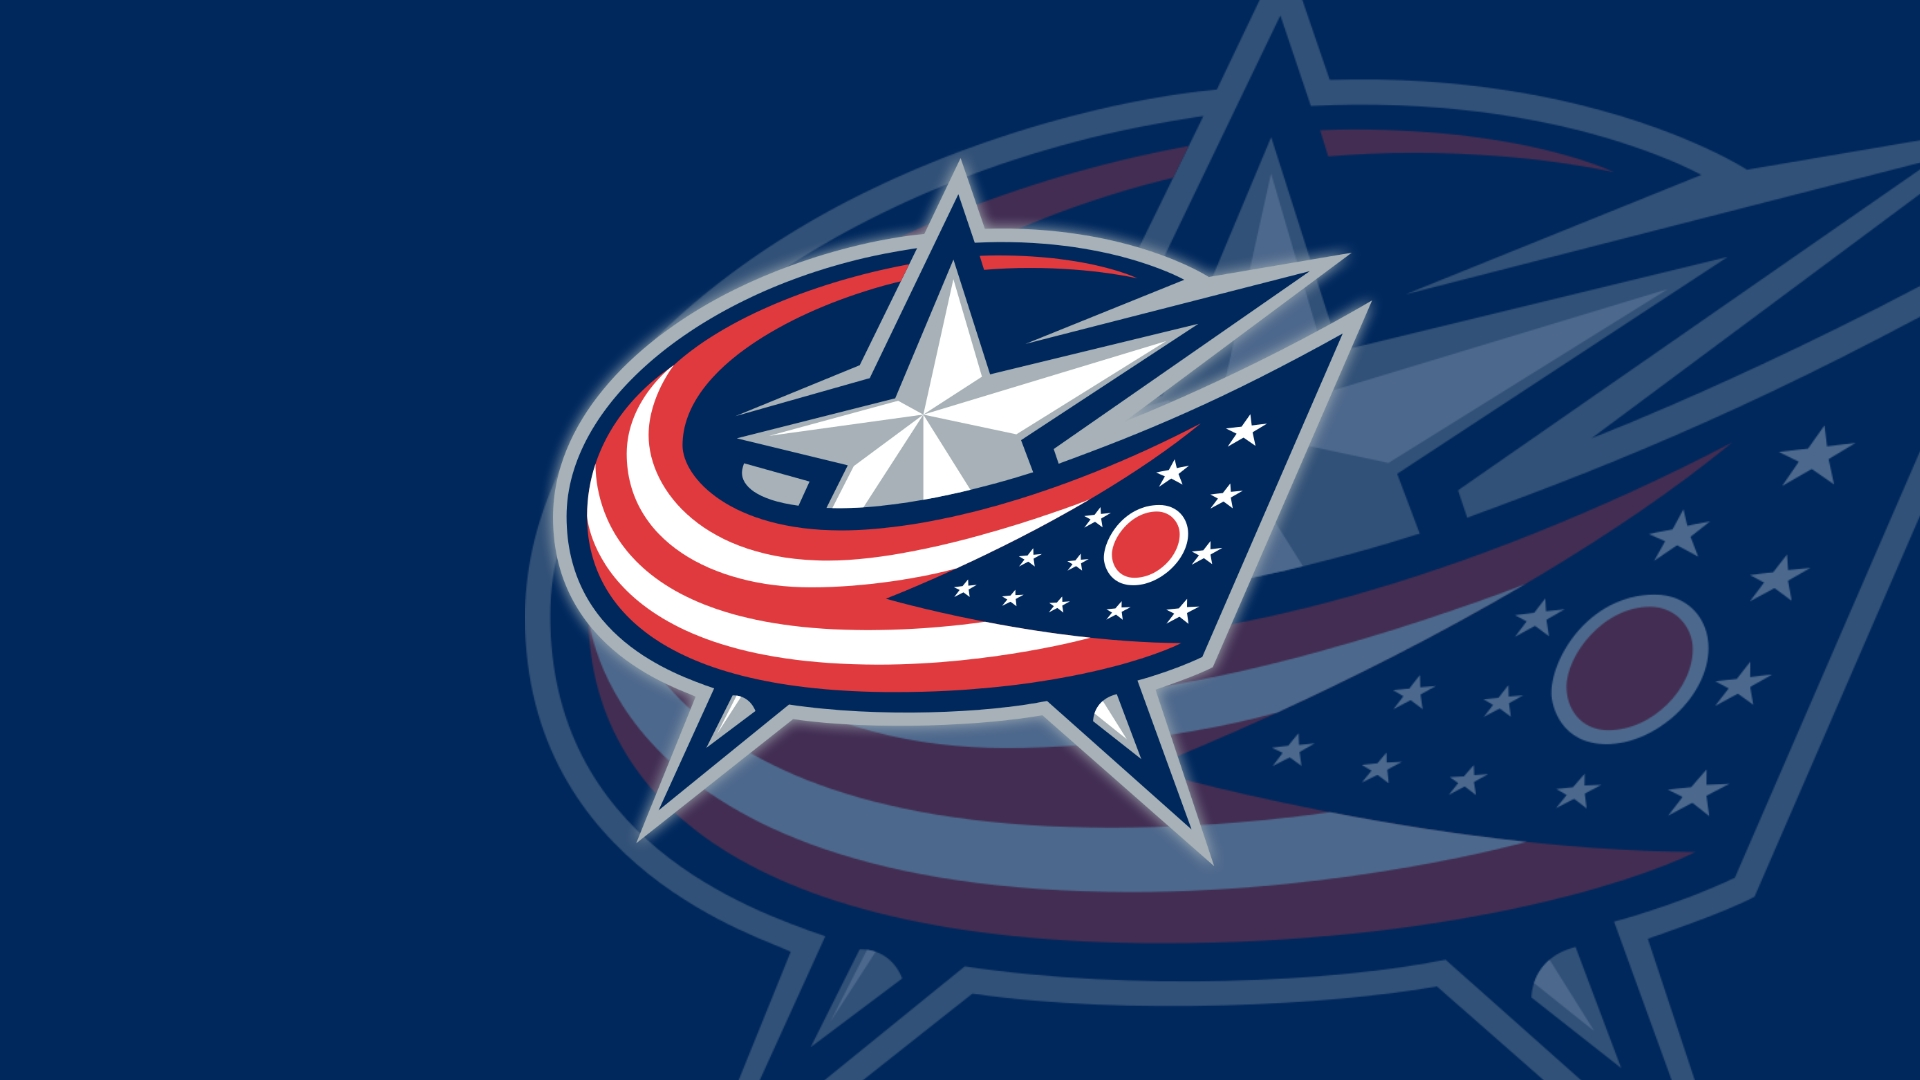 columbus blue jackets 1920x1080